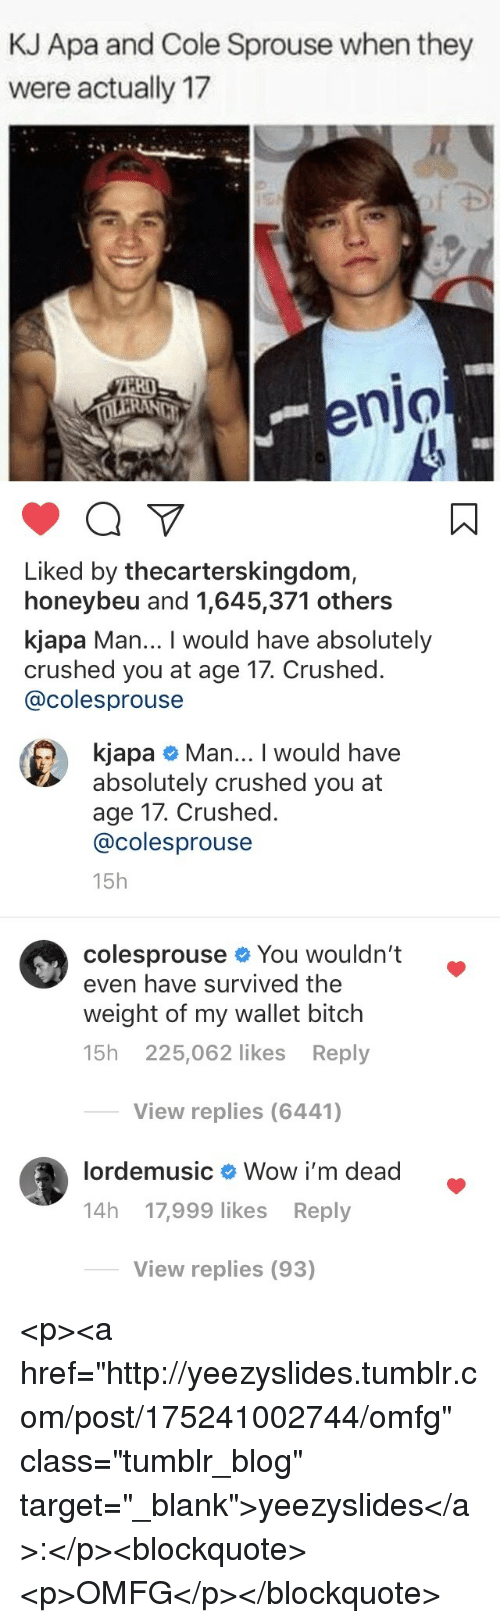 """Bitch, Target, and Tumblr: KJ Apa and Cole Sprouse when they  were actually 17  RI  enjo  Liked by thecarterskingdom,  honeybeu and 1,645,371 others  kjapa Man... I would have absolutely  crushed you at age 17. Crushed.  @colesprouse   kjapa # Man I would have  absolutely crushed you at  age 17. Crushed.  @colesprouse  15h  colesprouse You wouldn't .  even have survived the  weight of my wallet bitch  15h 225,062 likes Reply  View replies (6441)  lordemusic  Wow i'm dead  14h 17,999 likes Reply  View replies (93) <p><a href=""""http://yeezyslides.tumblr.com/post/175241002744/omfg"""" class=""""tumblr_blog"""" target=""""_blank"""">yeezyslides</a>:</p><blockquote><p>OMFG</p></blockquote>"""